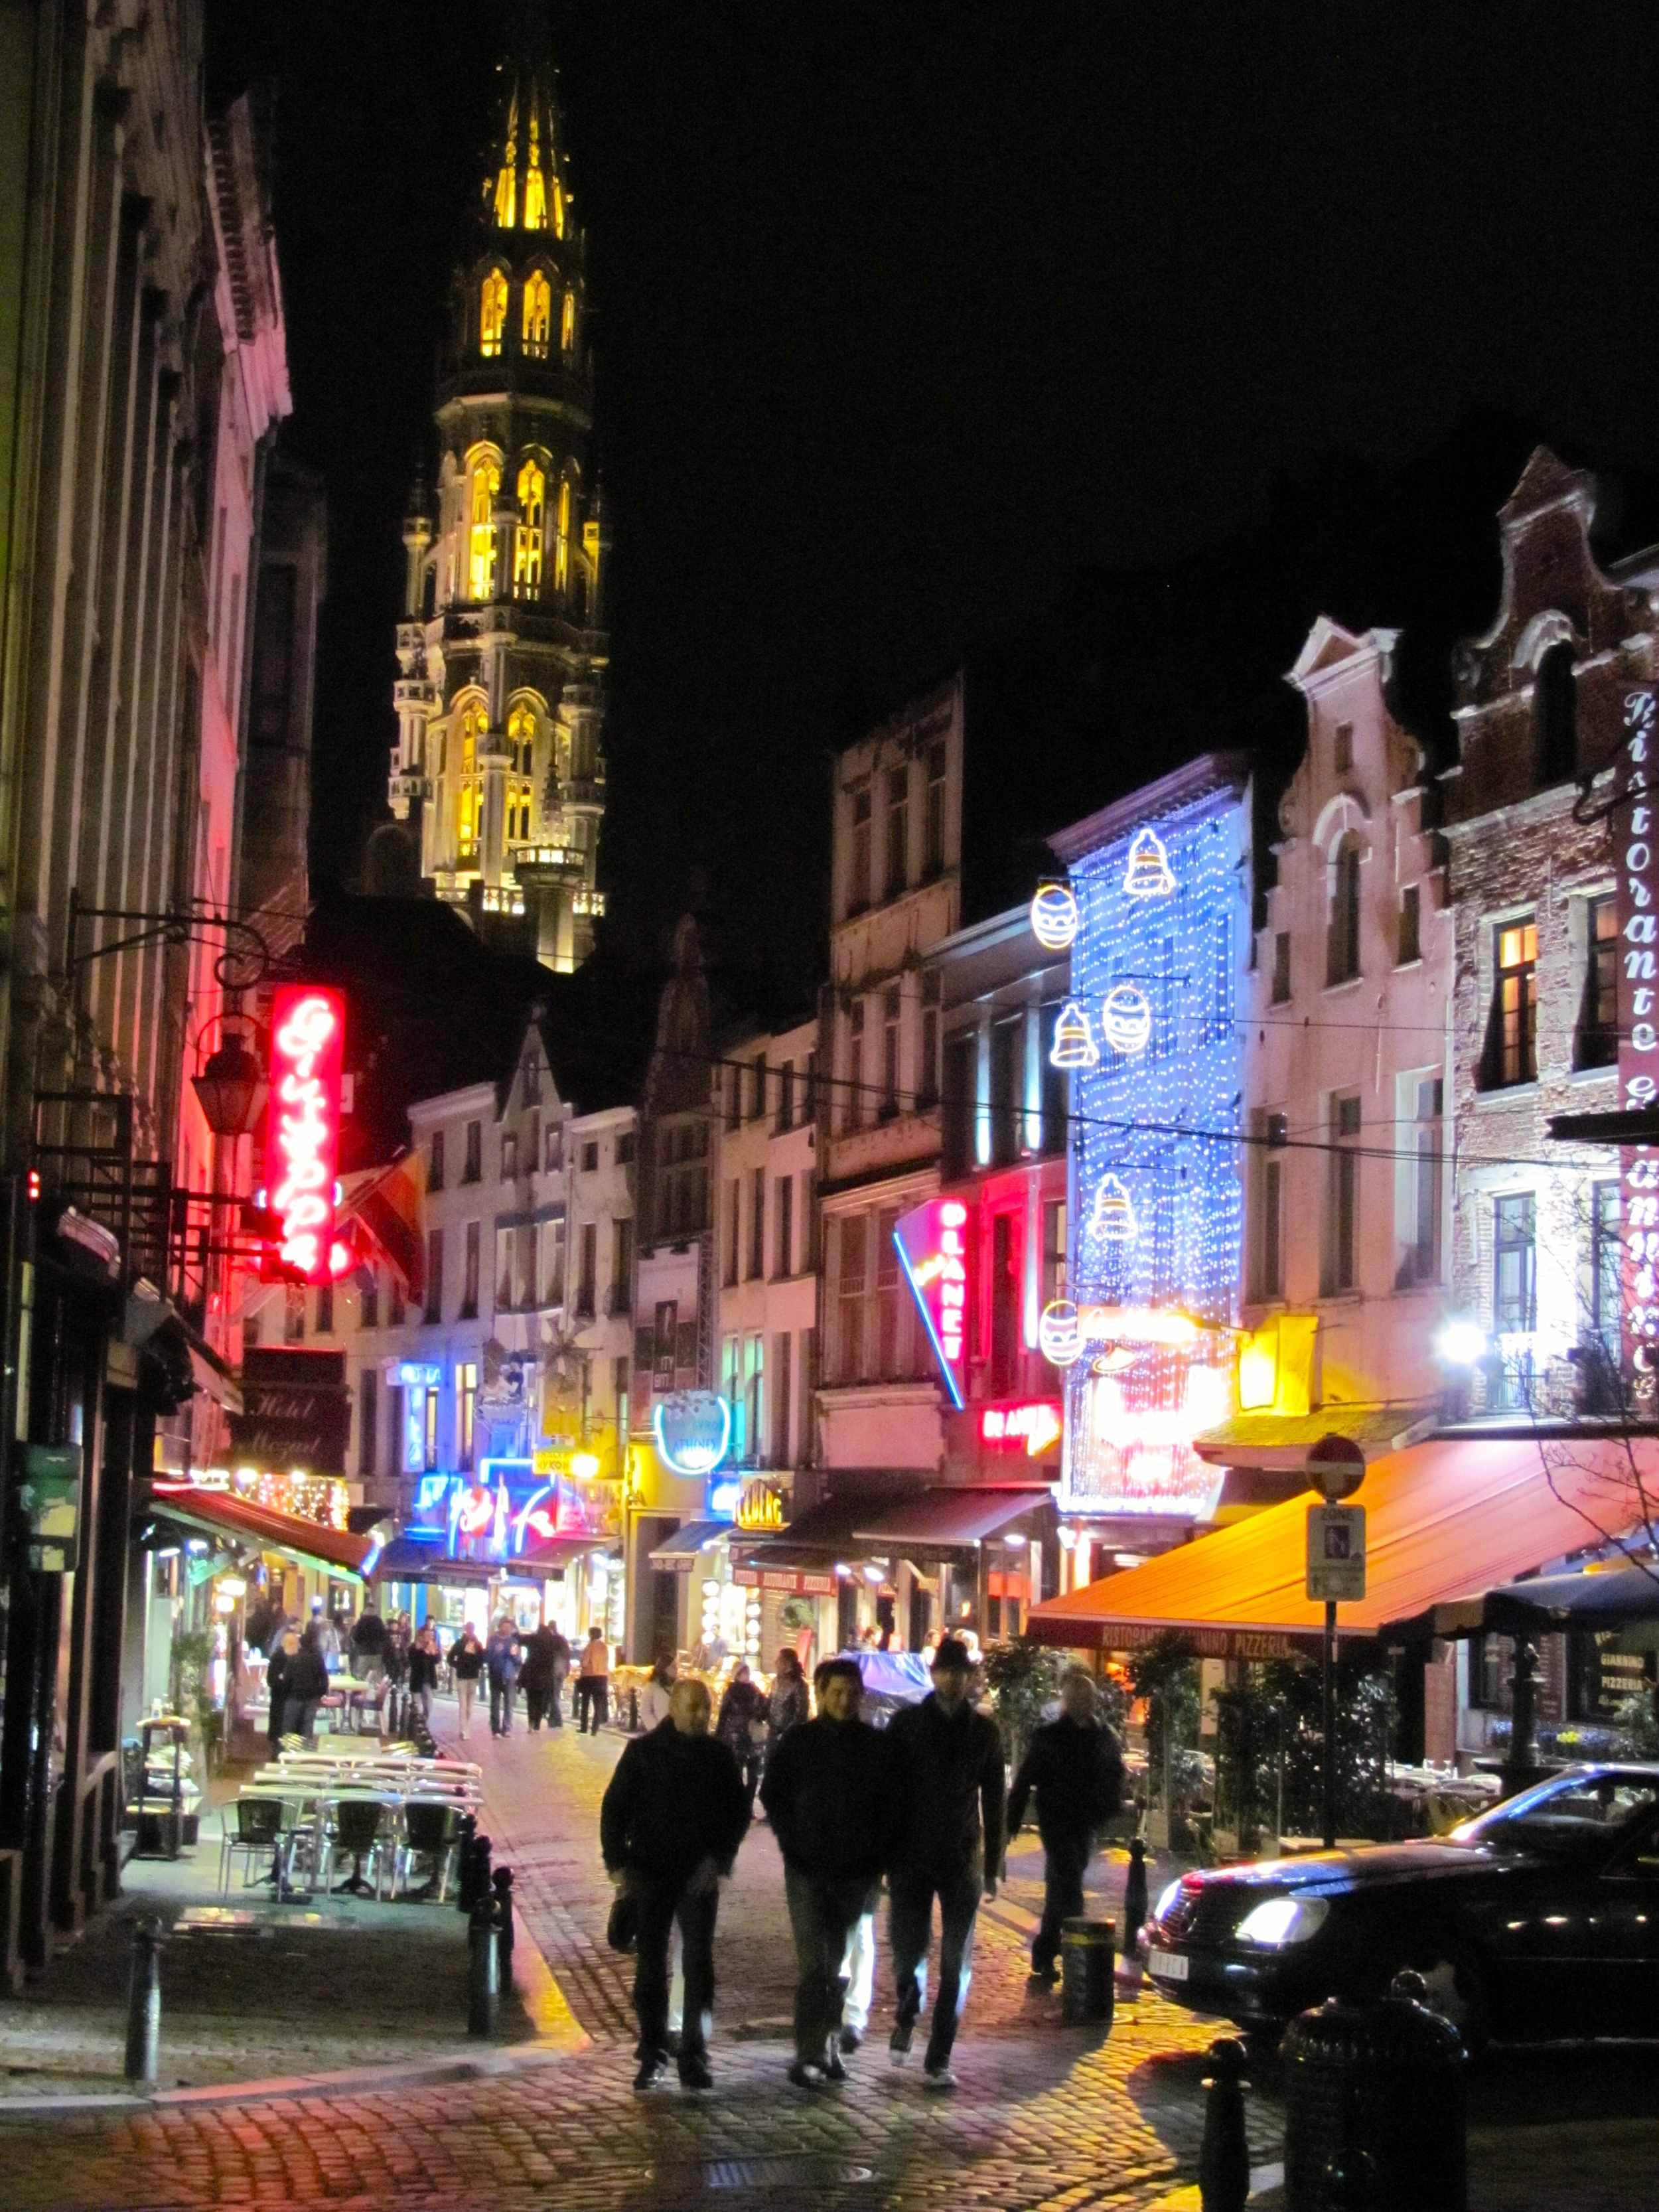 Street night view of Hotel de Ville de Bruxelles - formerly Town Hall, 15th Century Gothic, Grand Place, Old City Brussels, Belgium, VHS 2010